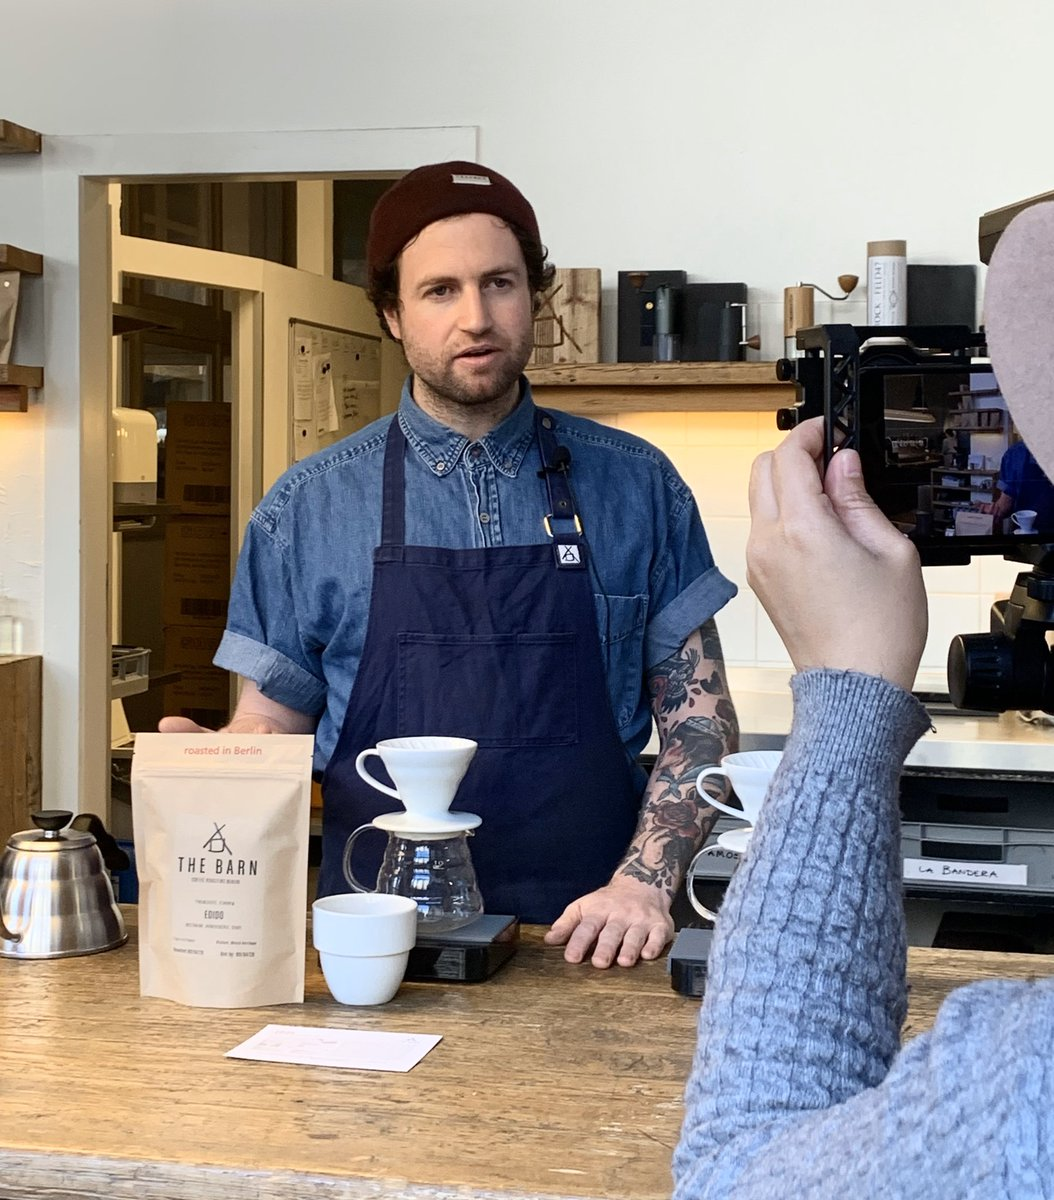 Brew like a Champ. We run a Live IG Video Friday morning at 10:30 Berlin Time. Our Headbarista Jake will take you through his V60 approach in his first session.   #coffeebrewing #coffeeworkshop #v60 #sharingknowledge #coffeecommunity #baristalife #thebarnberlinpic.twitter.com/sn2uGBU2y9